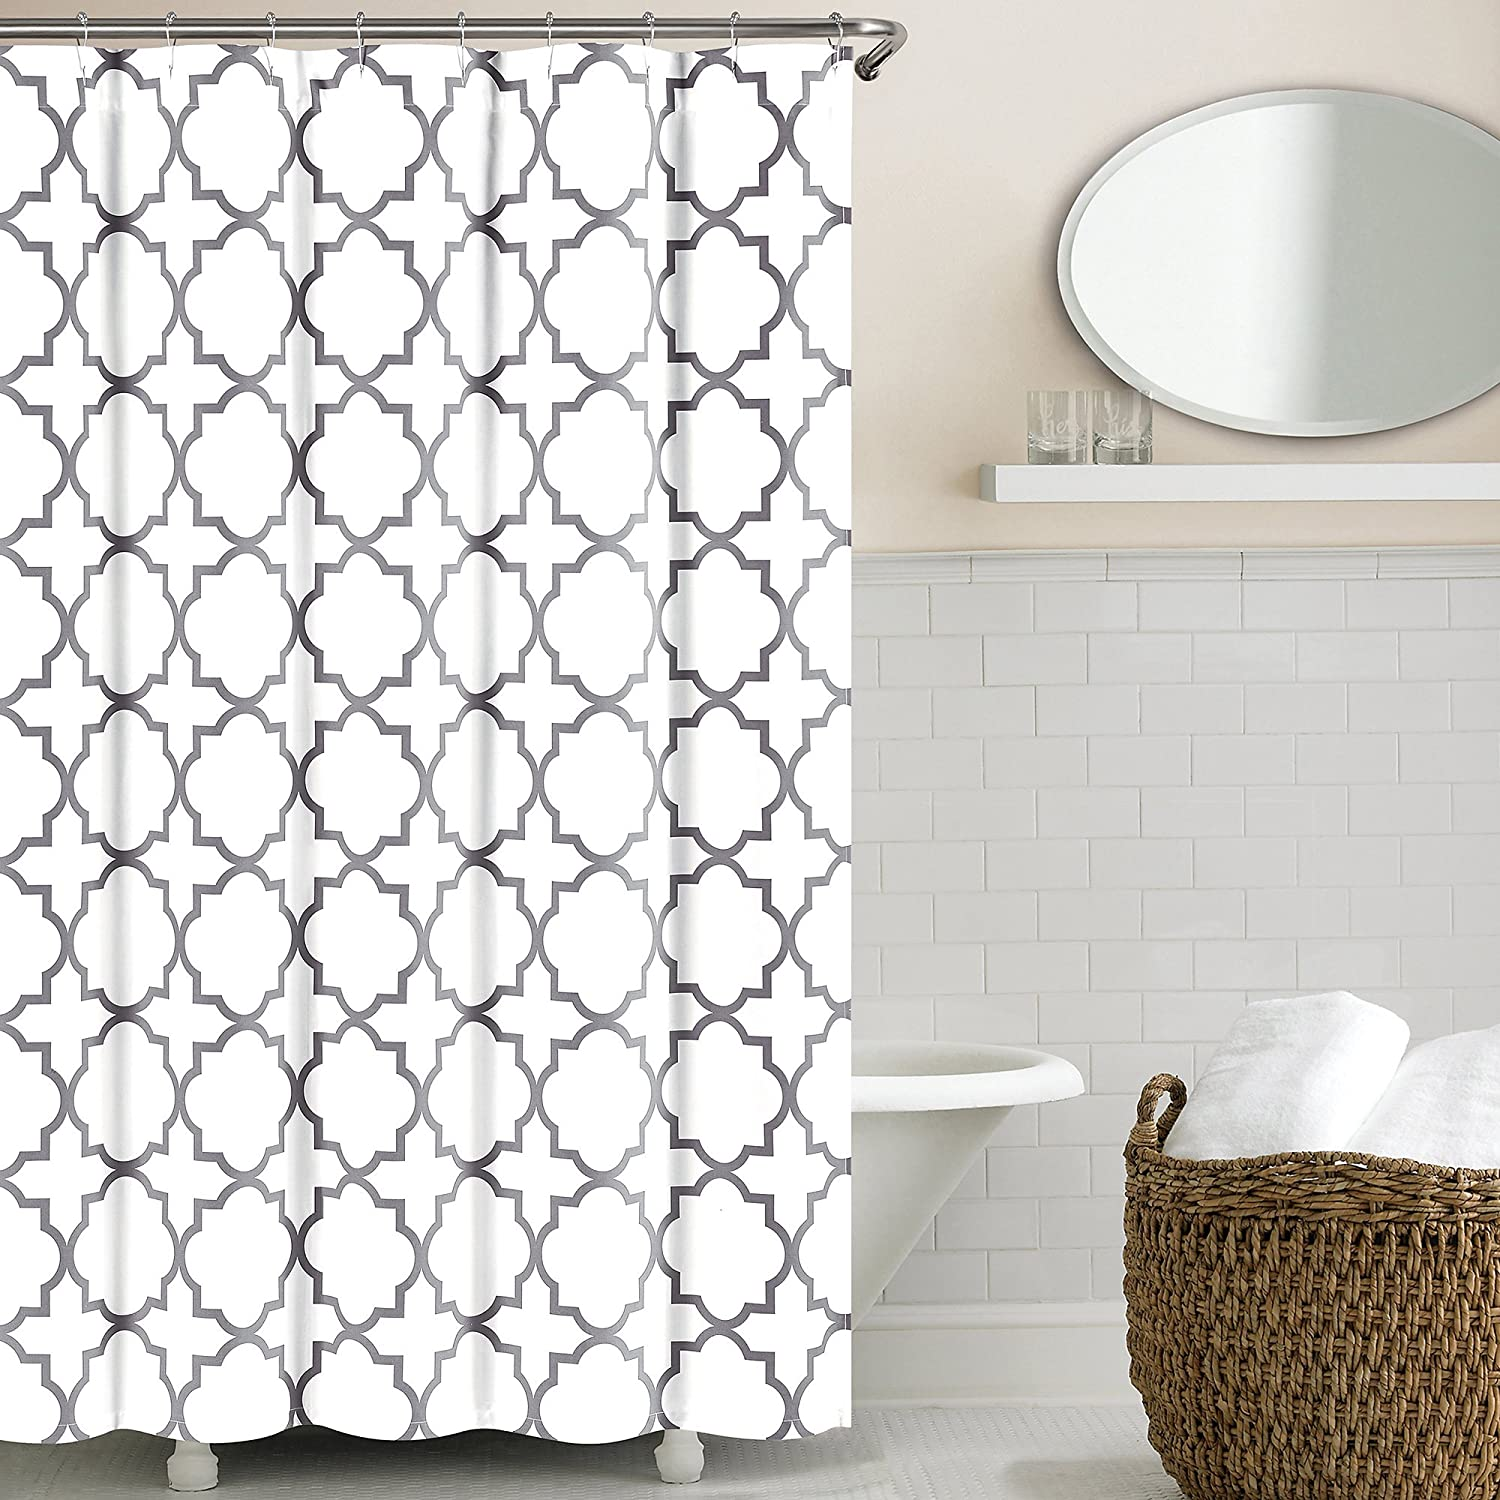 Amazon.com: Echelon Home Quatrefoil Shower Curtain, Zinc: Home & Kitchen - Amazon.com: Echelon Home Quatrefoil Shower Curtain, Zinc: Home